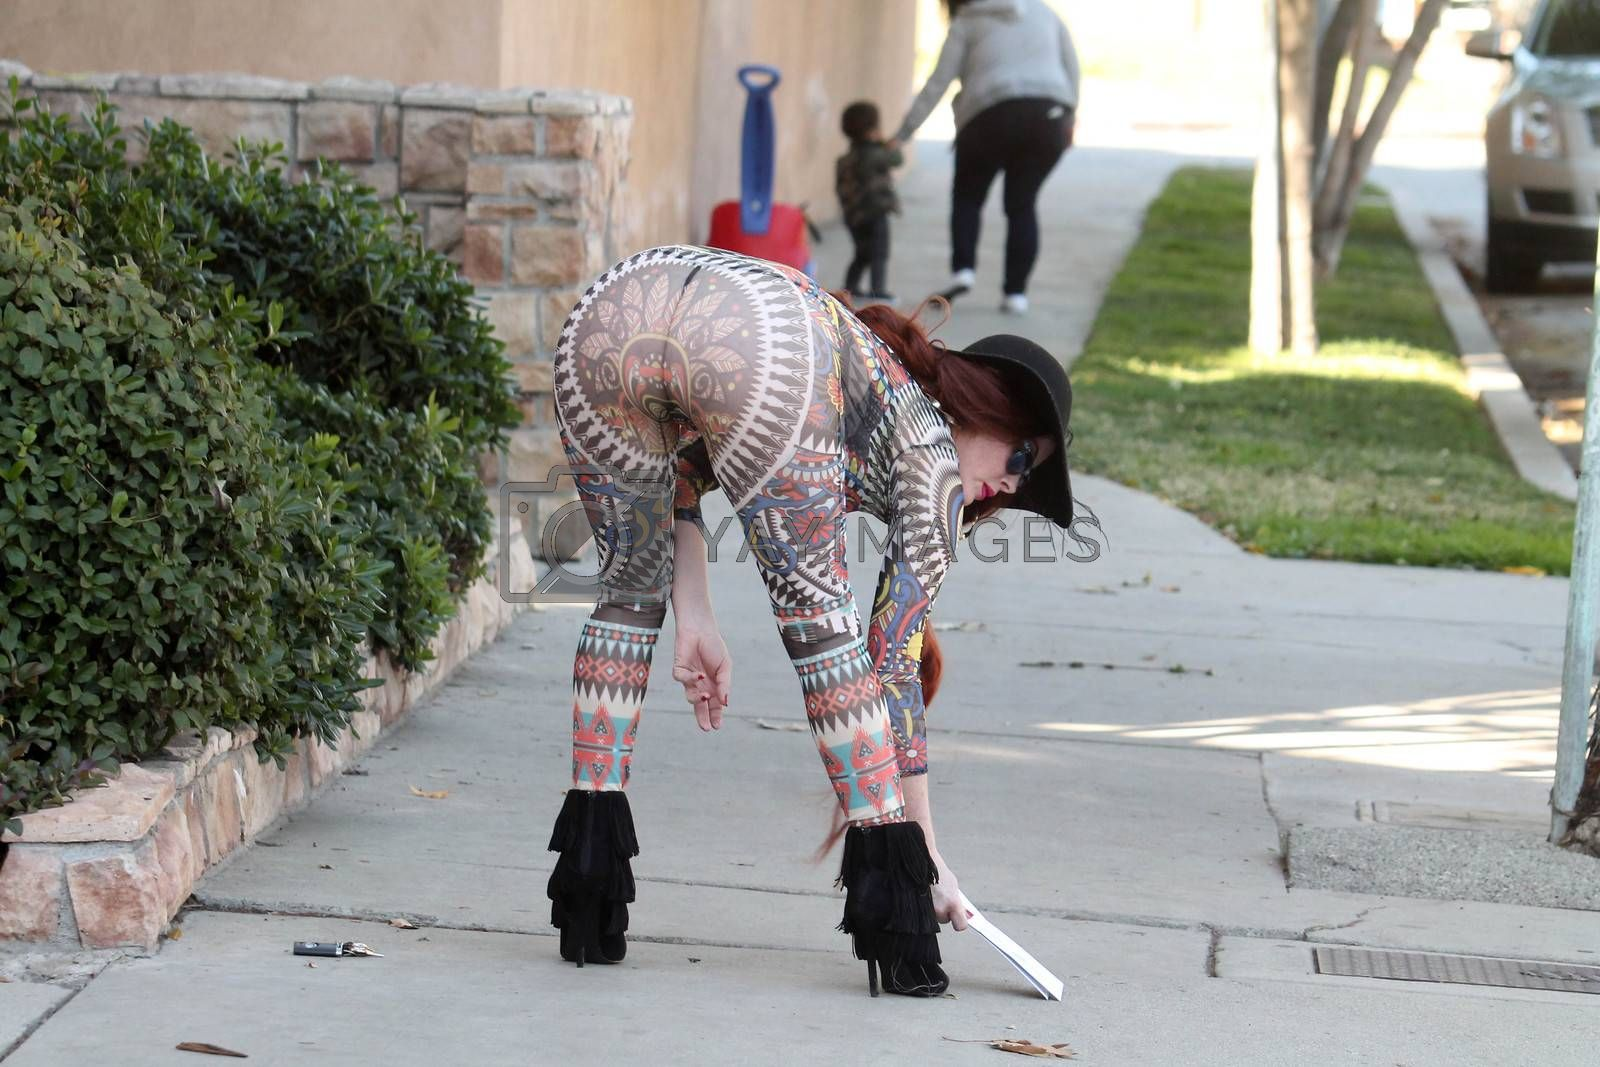 Royalty free image of Phoebe Price sighting wearing a see-thru outfit while getting her mail, Los Angeles, CA 01-28-16/ImageCollect by ImageCollect